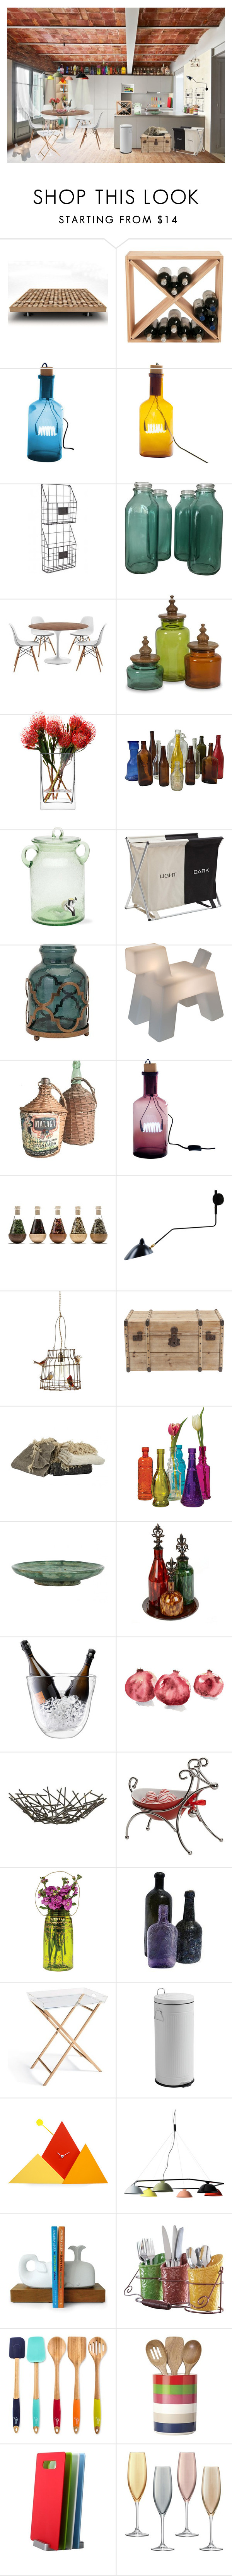 """Kitchen II"" by valentina-jerkovic ❤ liked on Polyvore featuring interior, interiors, interior design, home, home decor, interior decorating, mg12, ZENTS, Home Decorators Collection and LSA International"